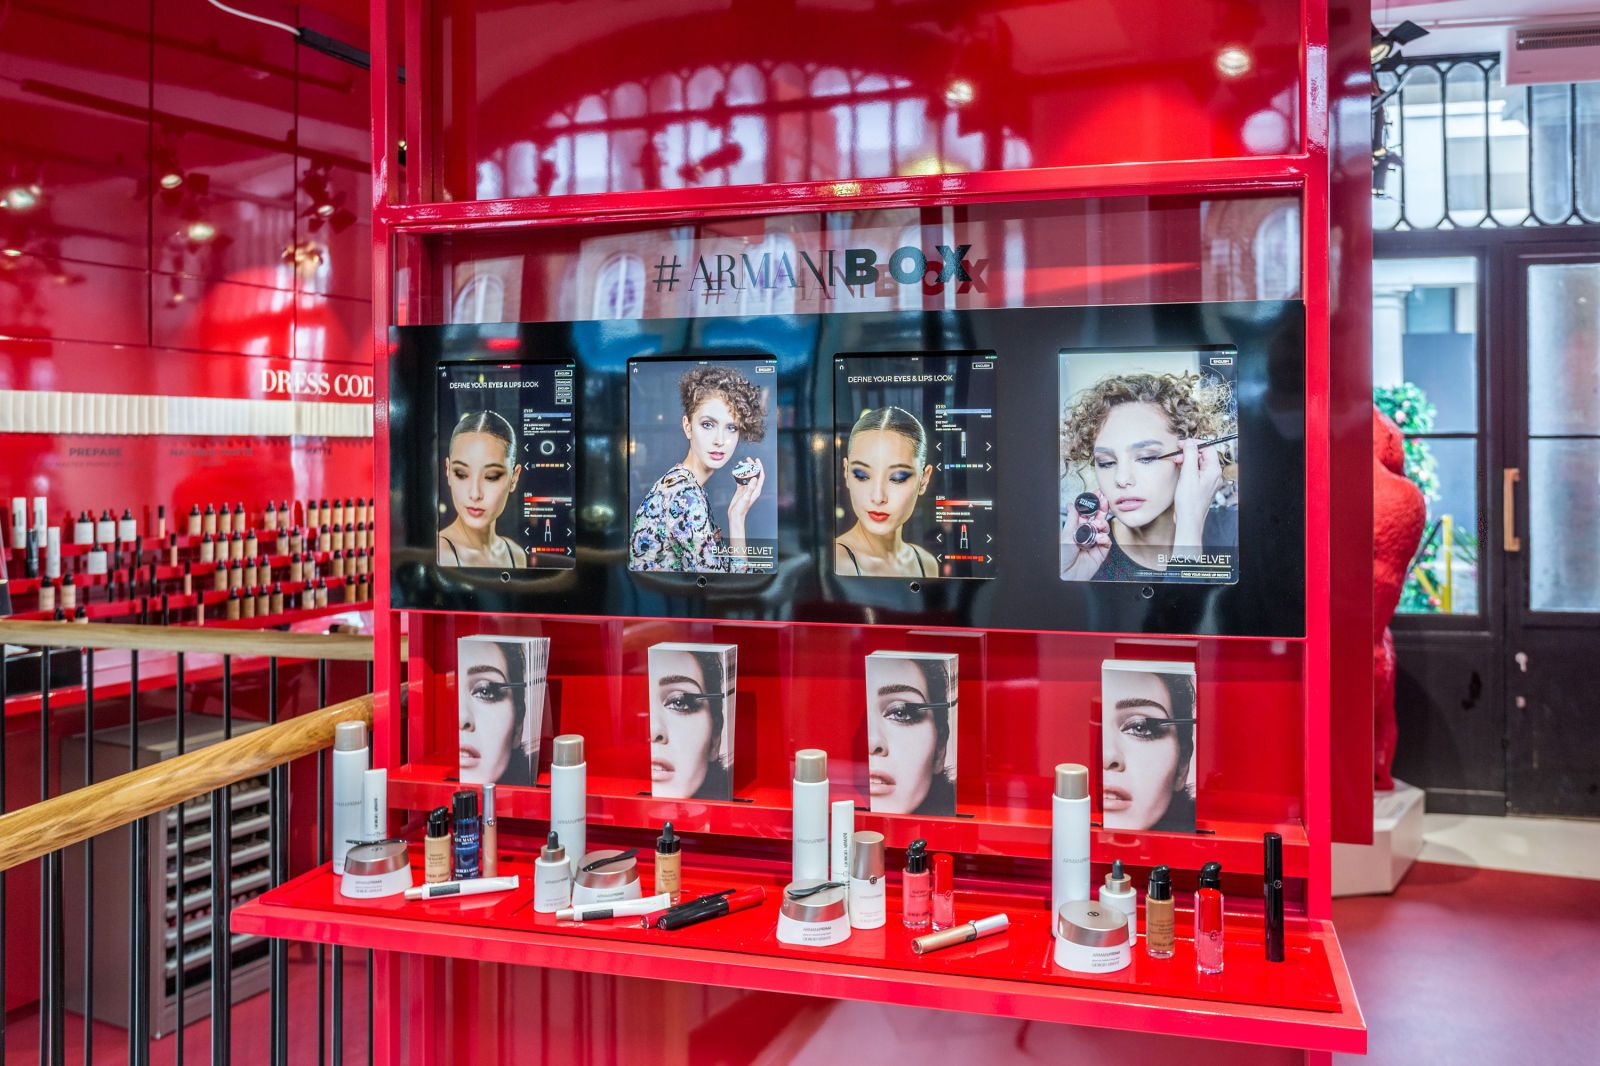 Armani launches first UK beauty pop-up store